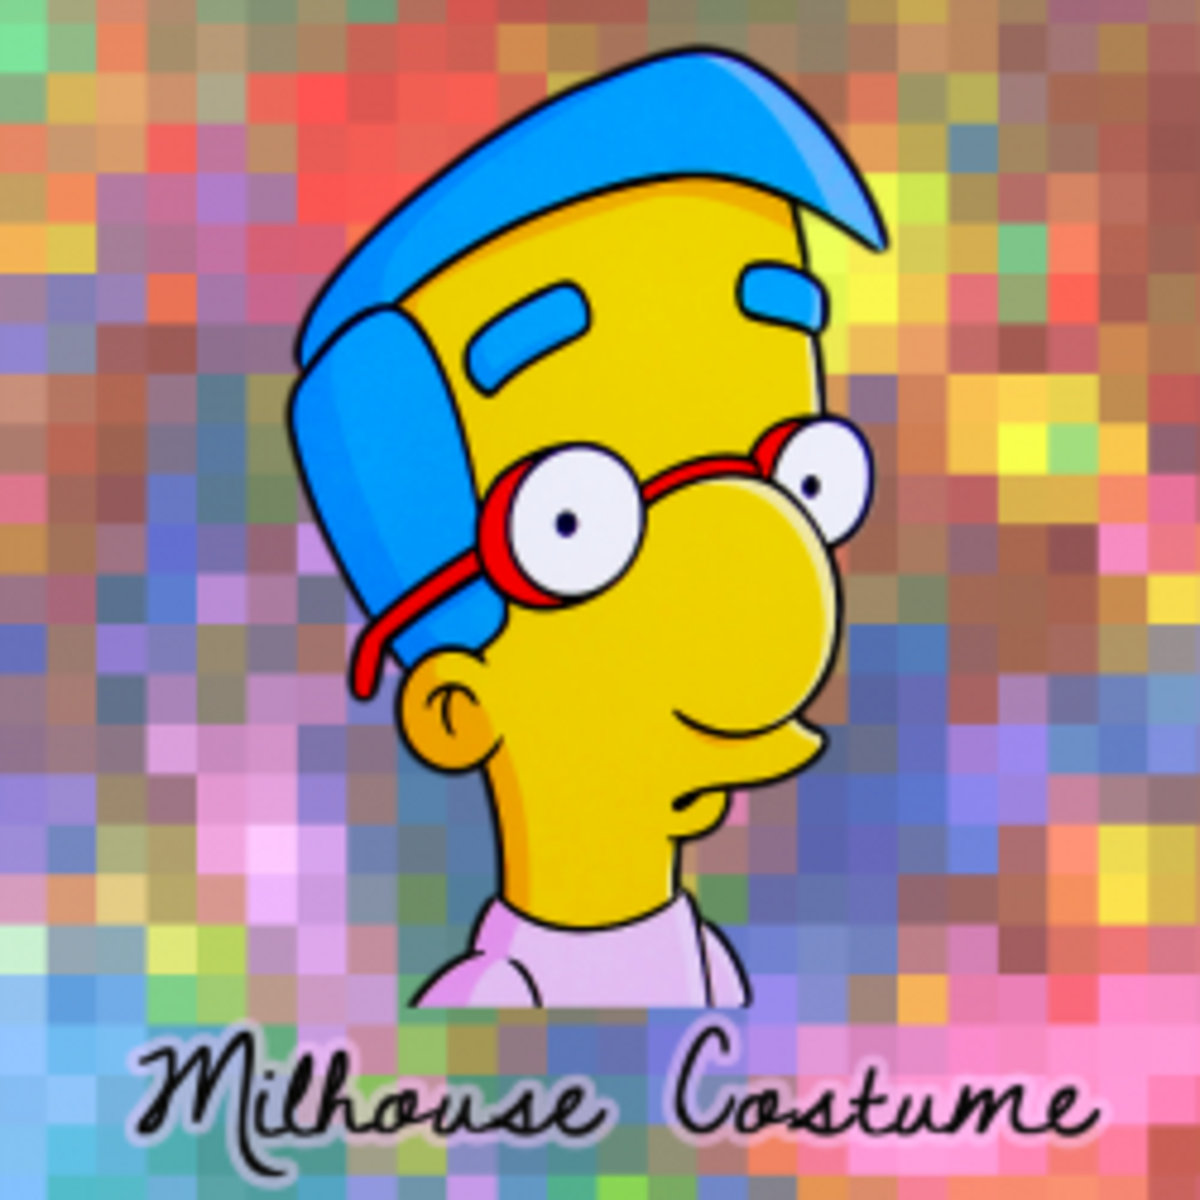 How to Make a Milhouse Costume (or Cosplay)